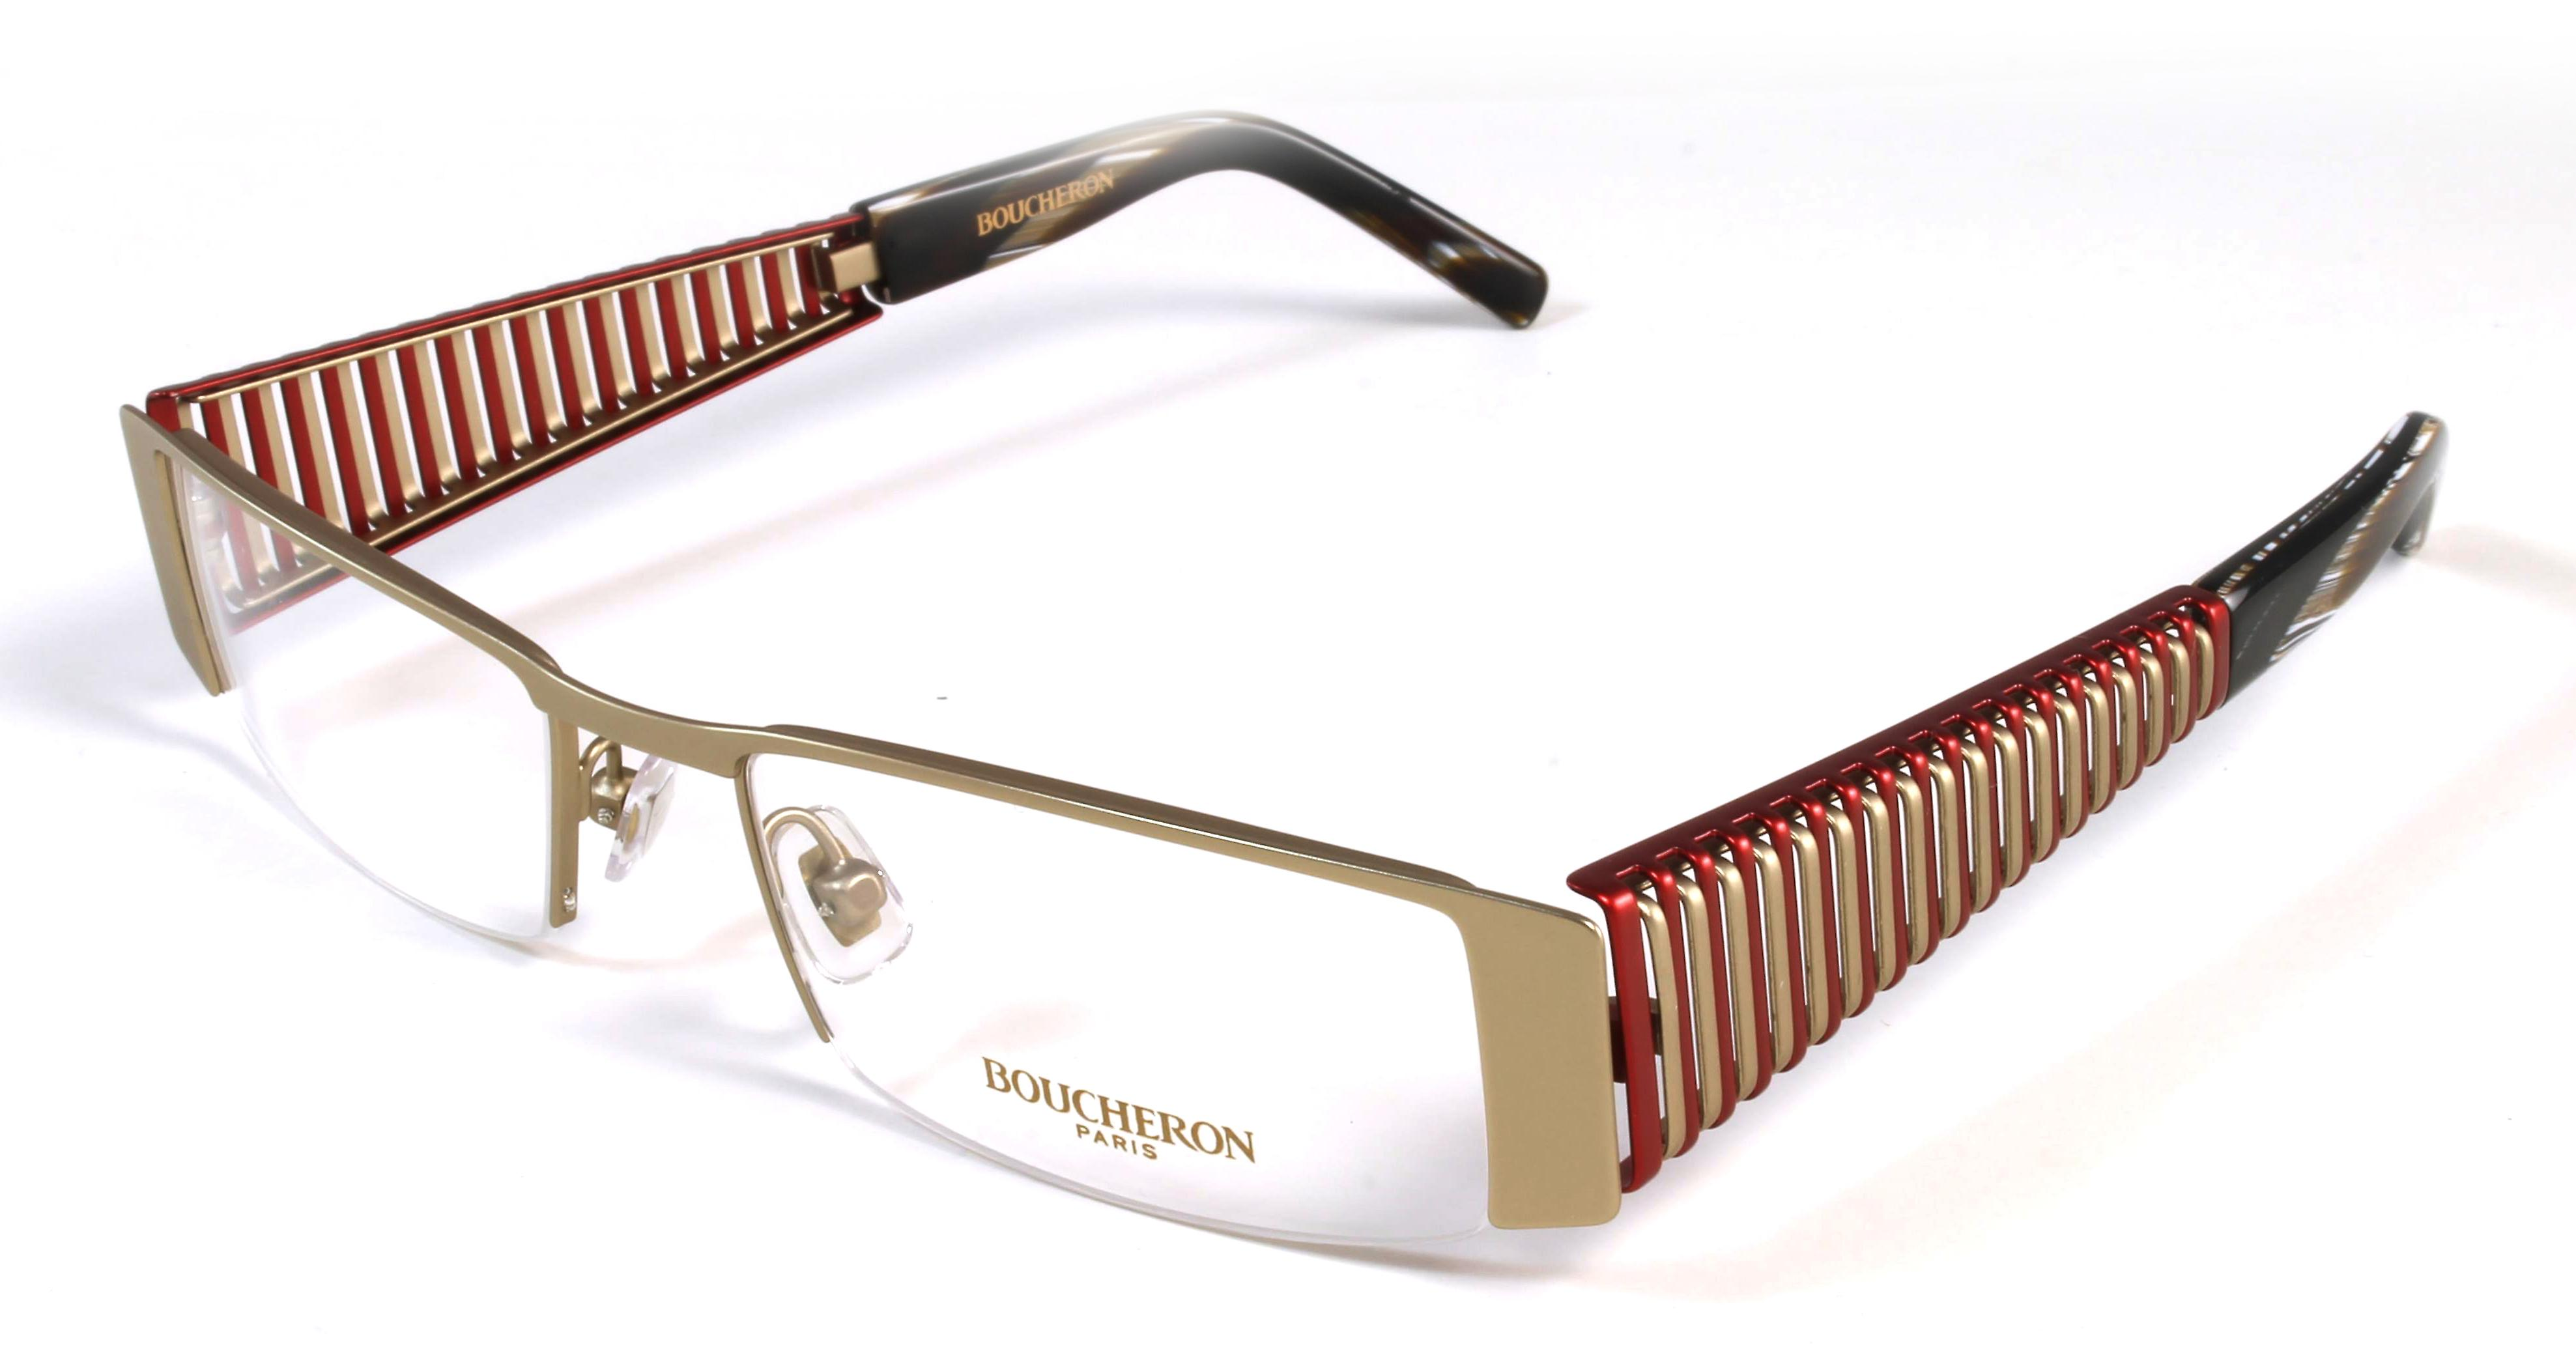 Boucheron Unisex Semi-Rectangle Eyeglasses Red/Gold